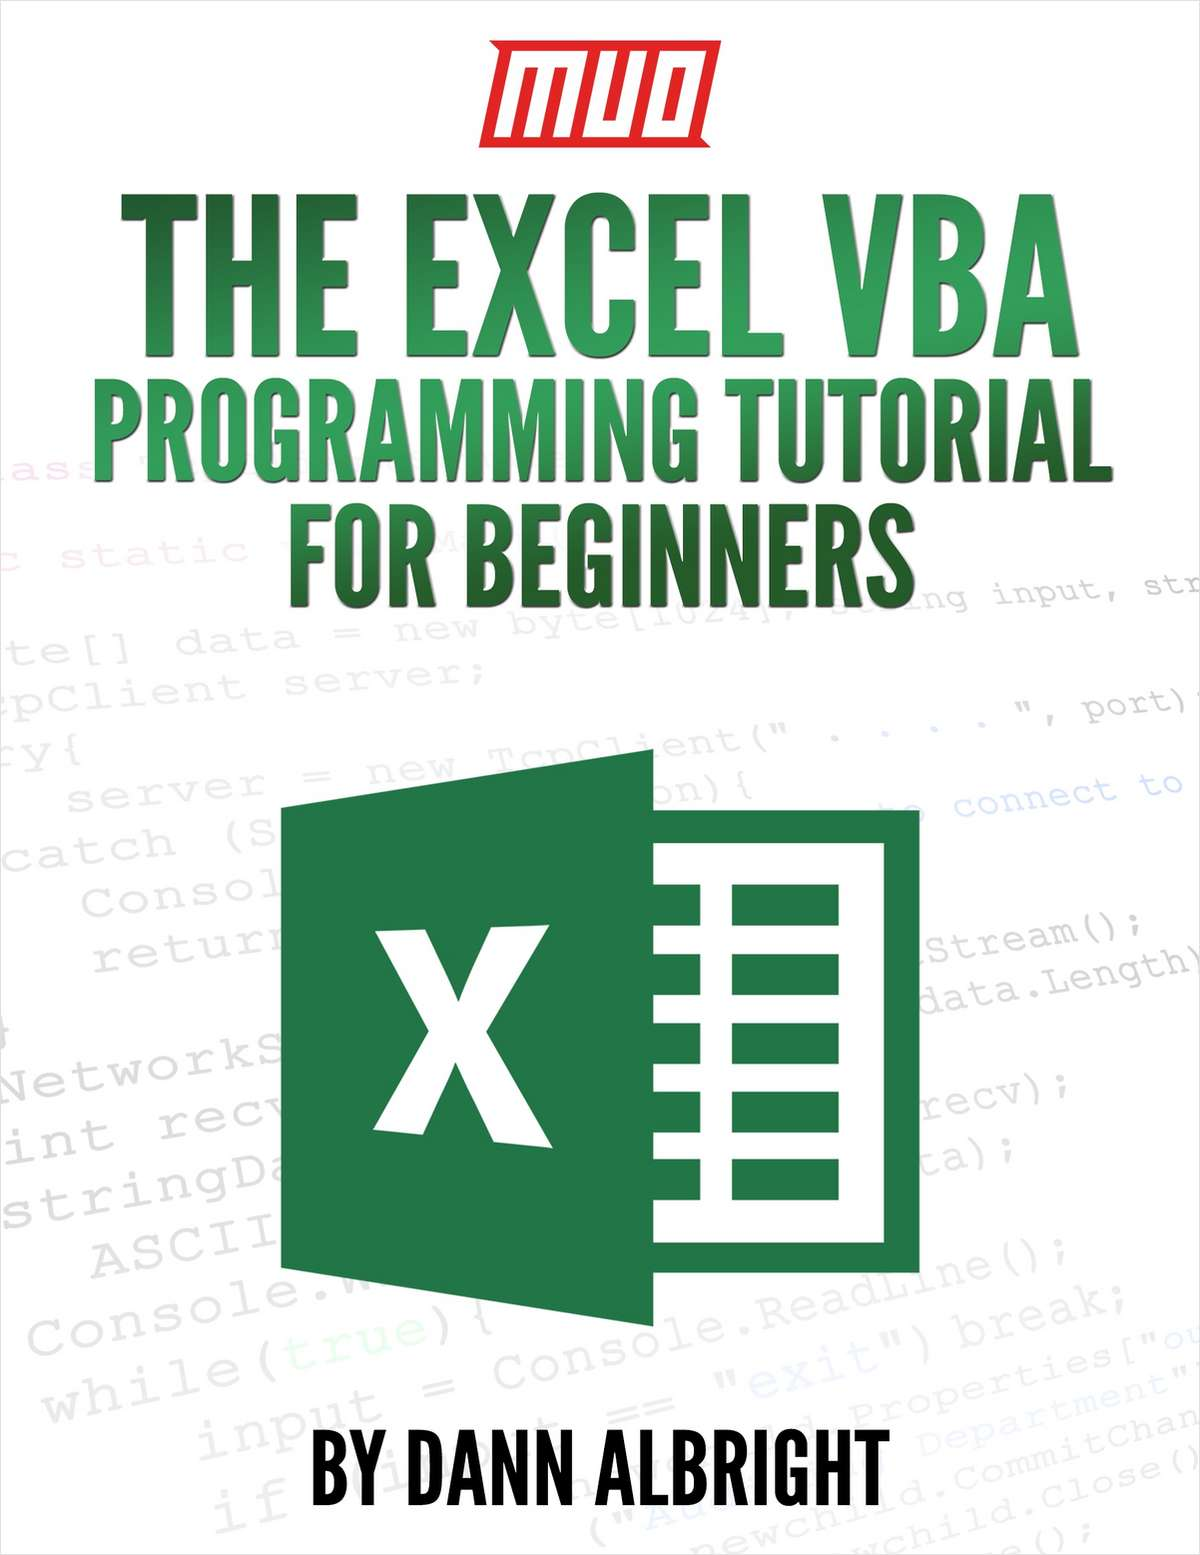 Programming Tutorial The Excel Vba Programming Tutorial For Beginners Free Eguide